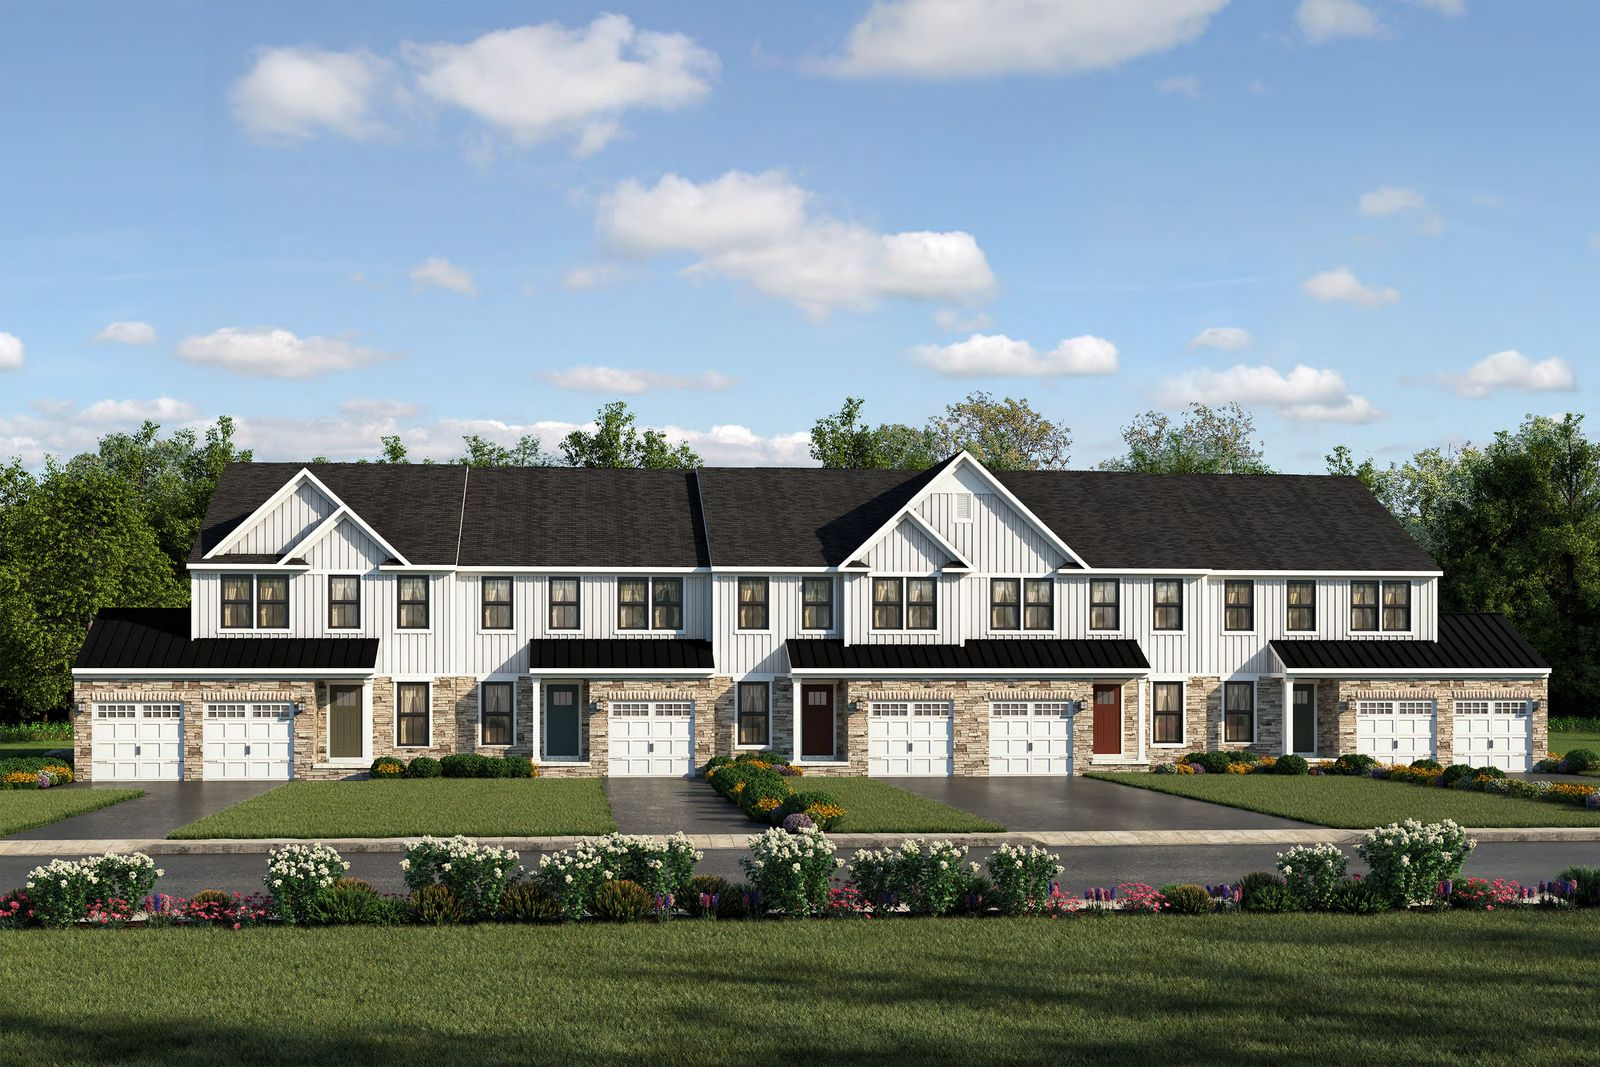 WELCOME TO ASHBOURNE MEADOWS TOWNHOMES:The lowest-priced new townhomes, minutes to Philadelphia, set on the former Ashbourne Country Club.Click here to join the VIP list for exclusive pricing and updates!